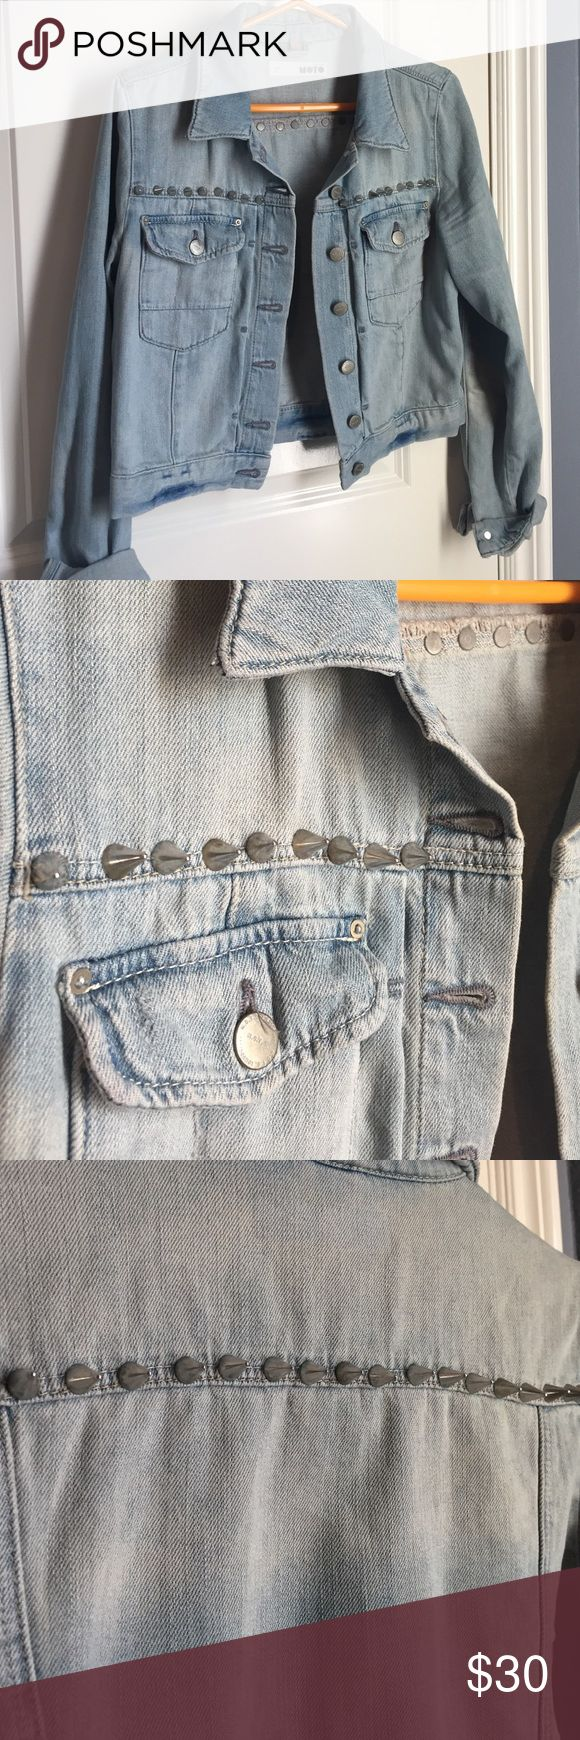 Studded Denim Jacket Edgy Topshop jacket with spiky stud detailing on the back and front. Hits at about the waist on someone average height. Runs a bit small Topshop Jackets & Coats Jean Jackets